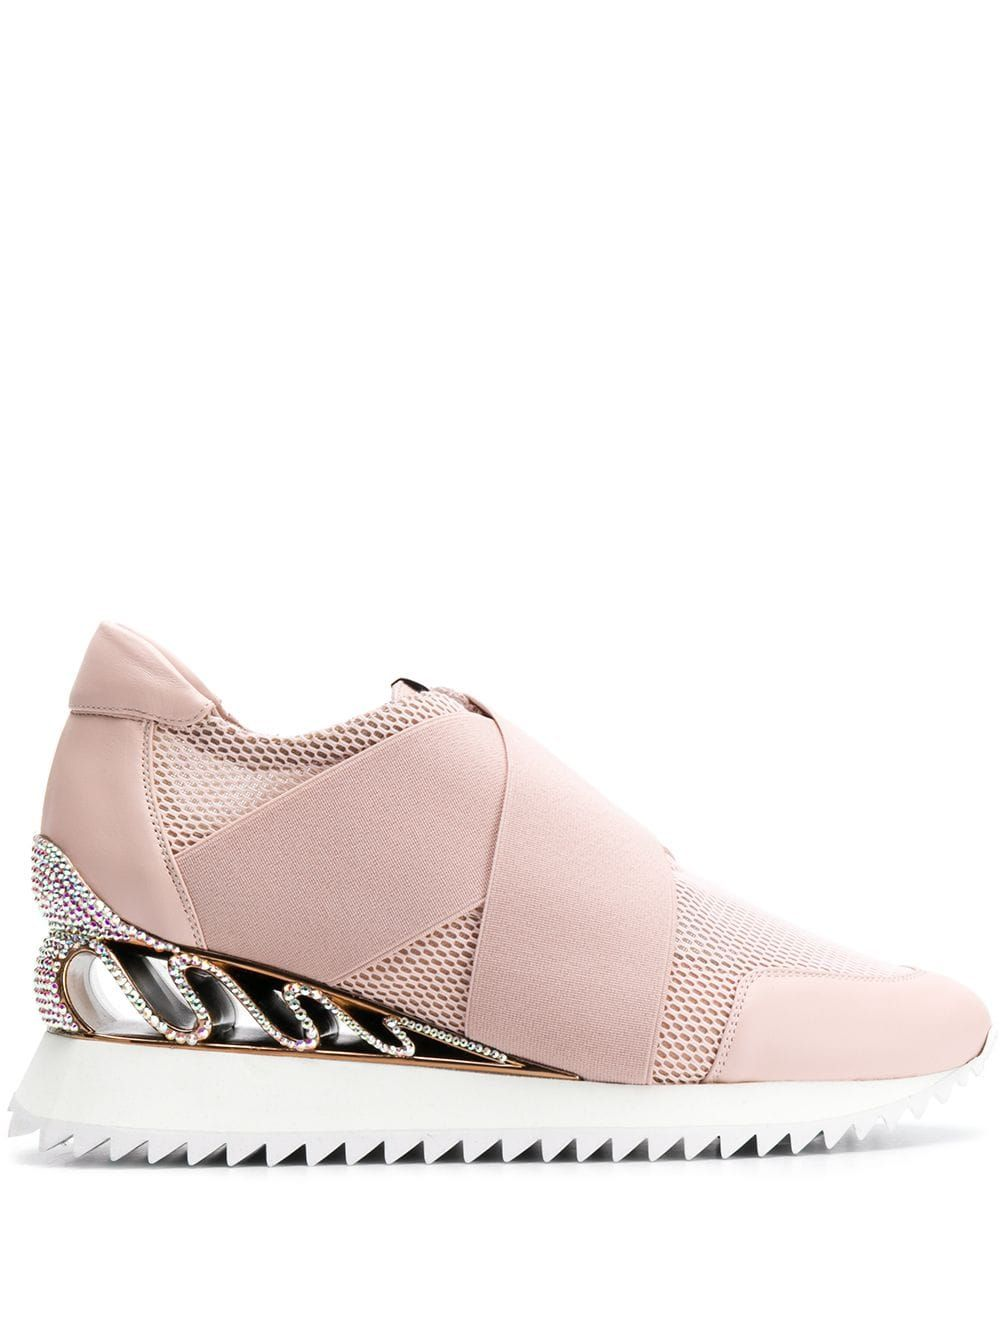 In On PinkProducts Le Silla Slip 2019 Sneakers jLGSzVMqUp